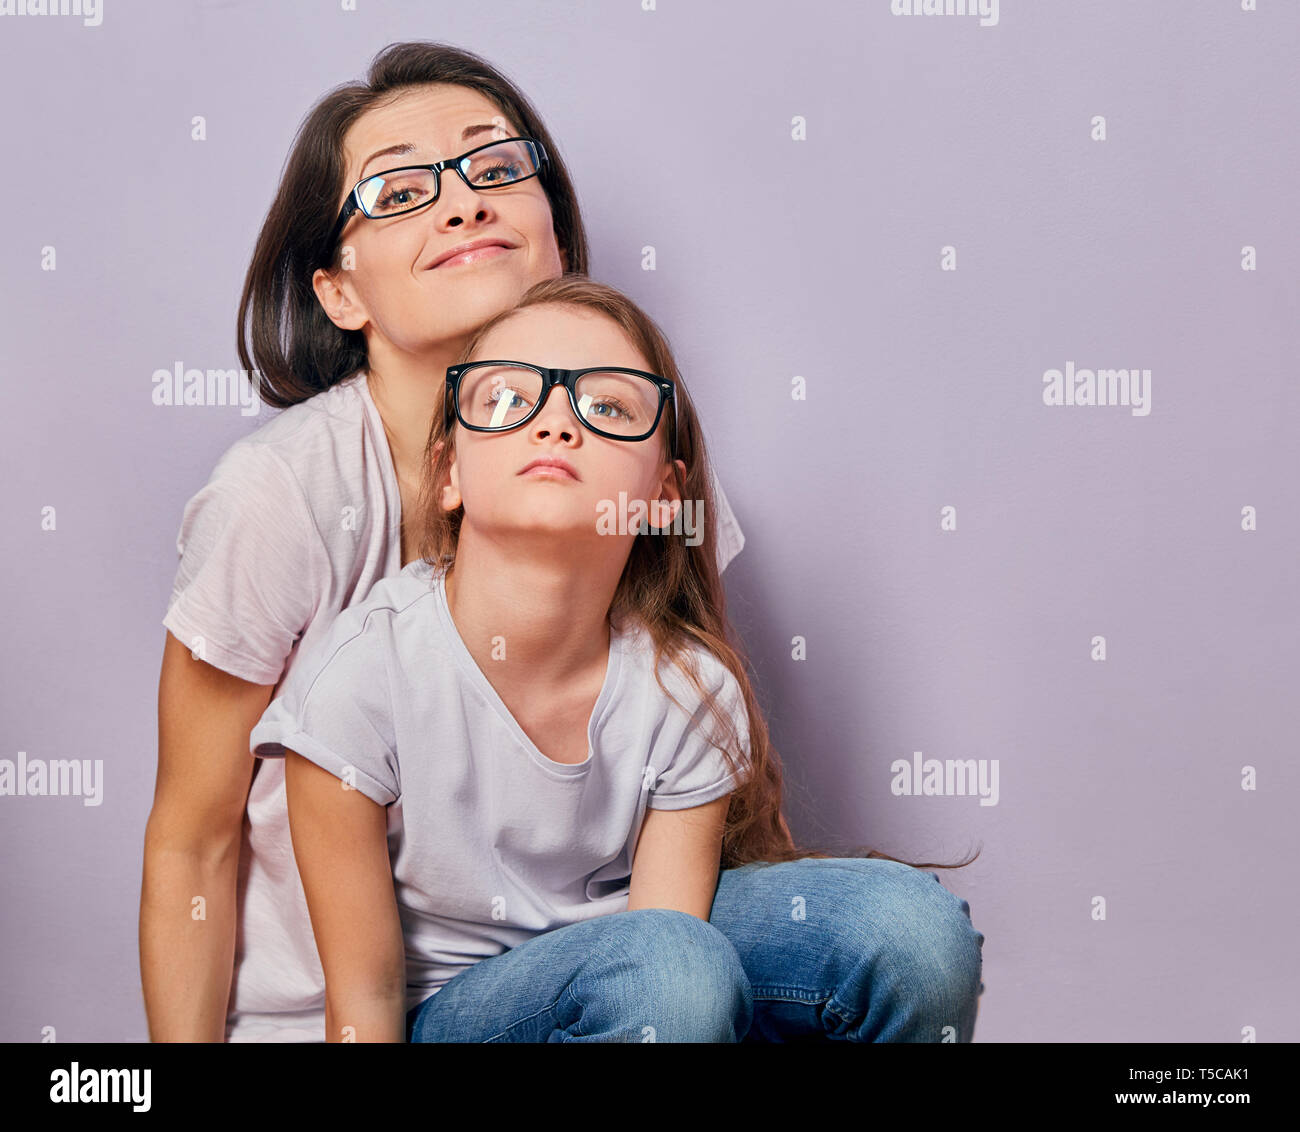 Grimacing positive smiling casual mother looking sitting with her unhappy offended thinking kid girl on violet wall background. Family in fashion eye  Stock Photo